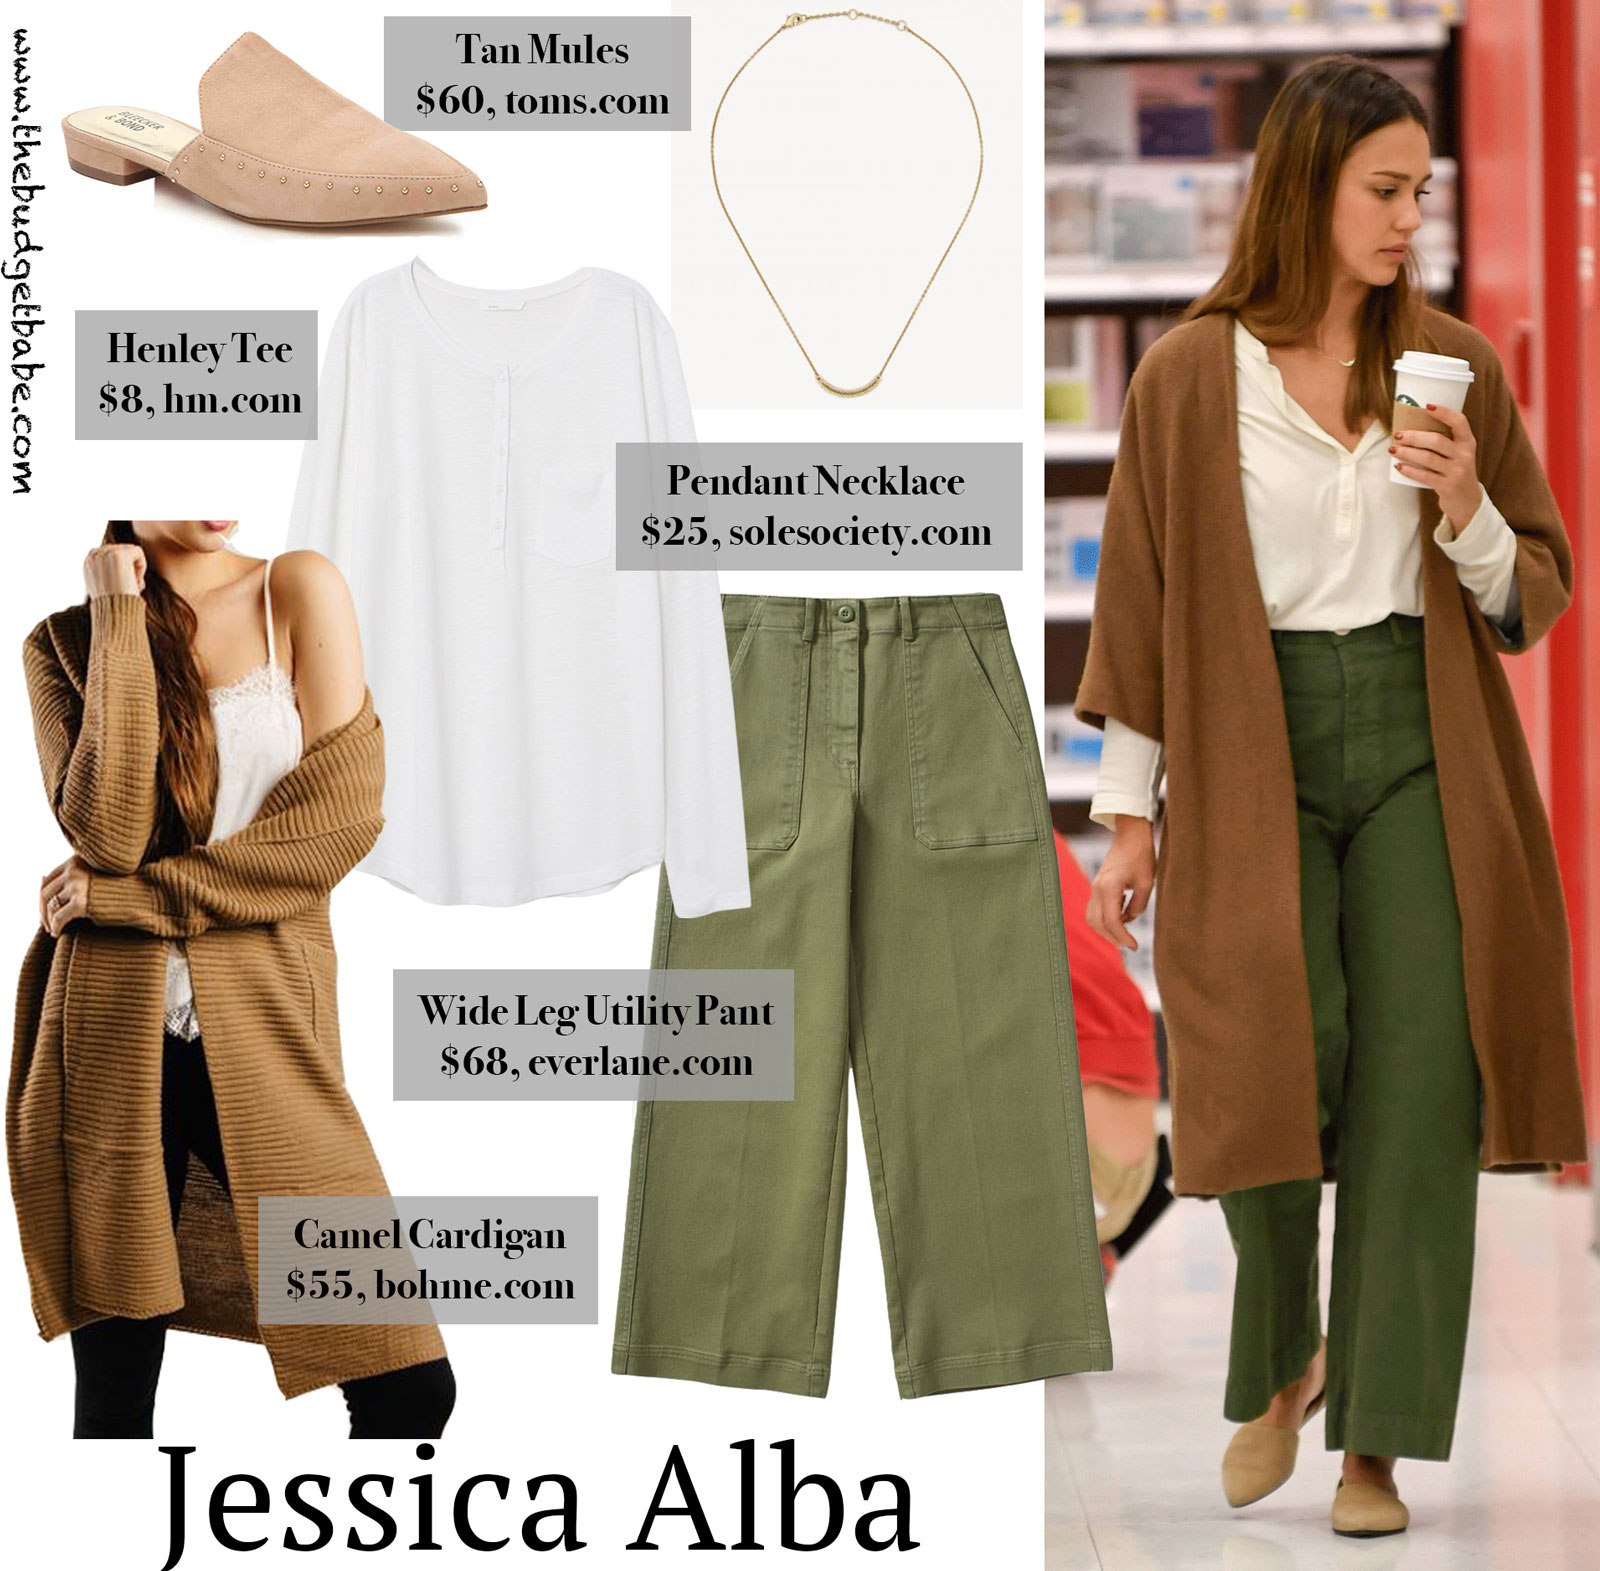 Jessica Alba Green Pants and Camel Cardigan Look for Less